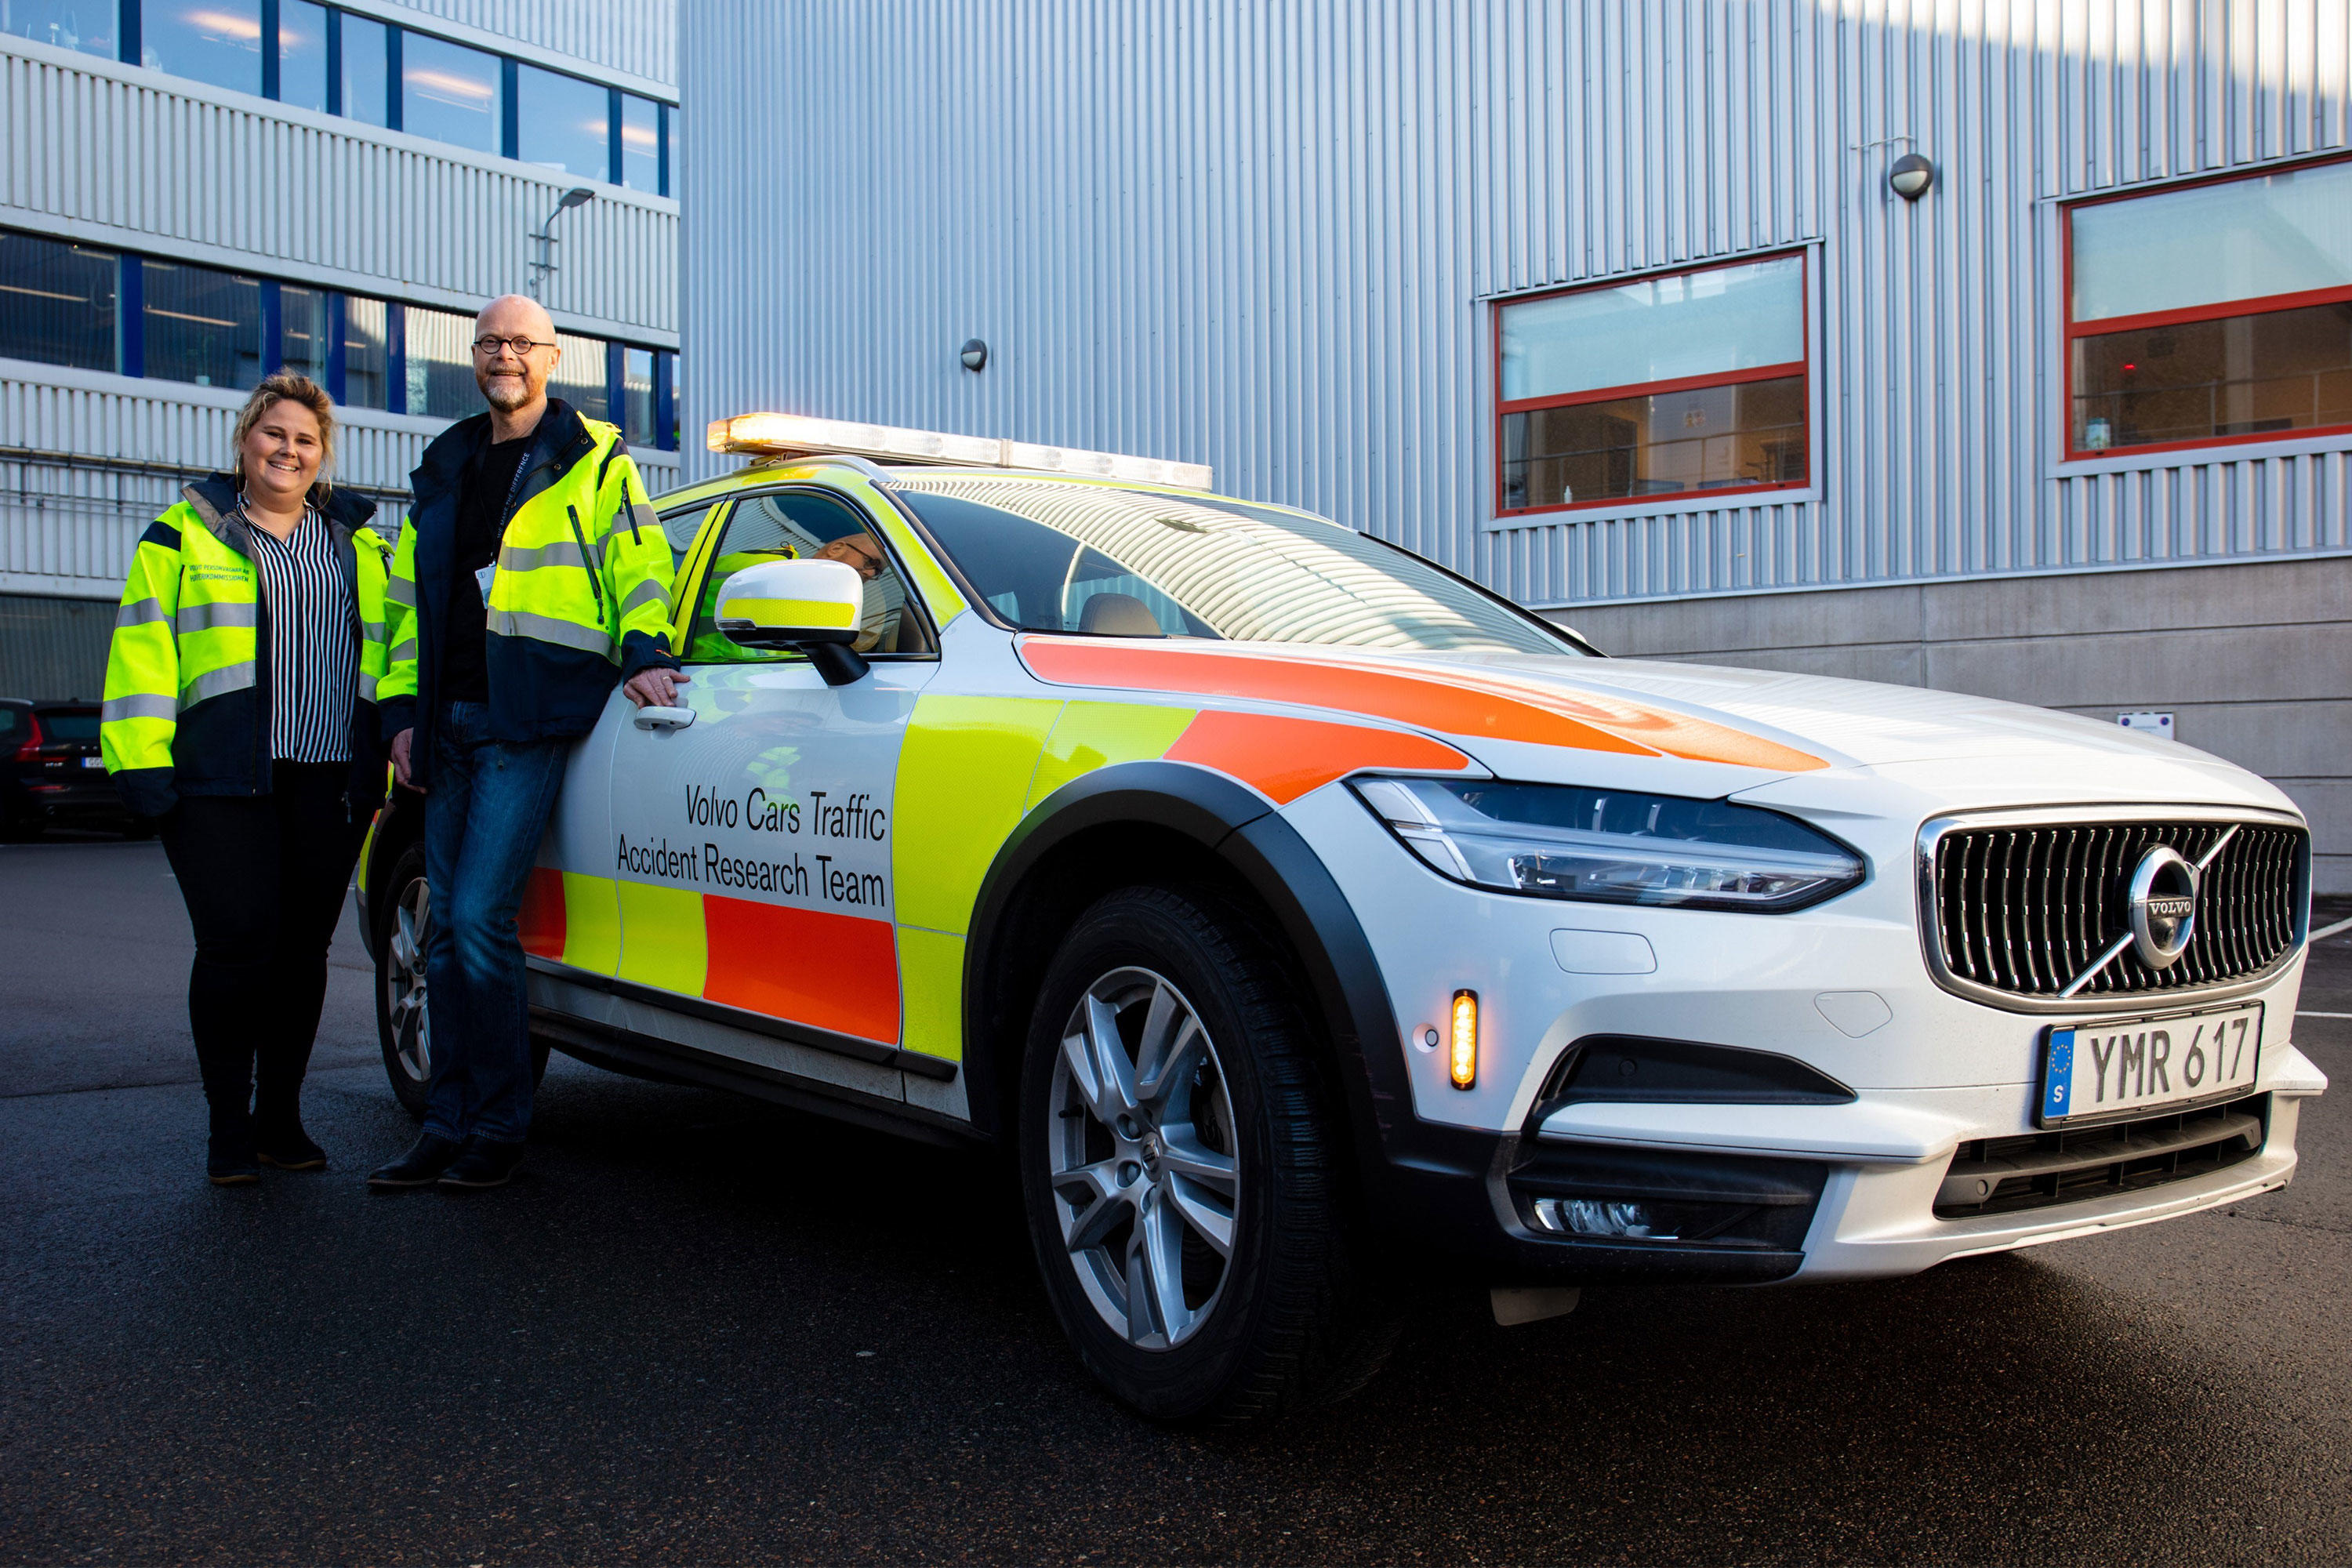 Volvo Cars Accident Research Team